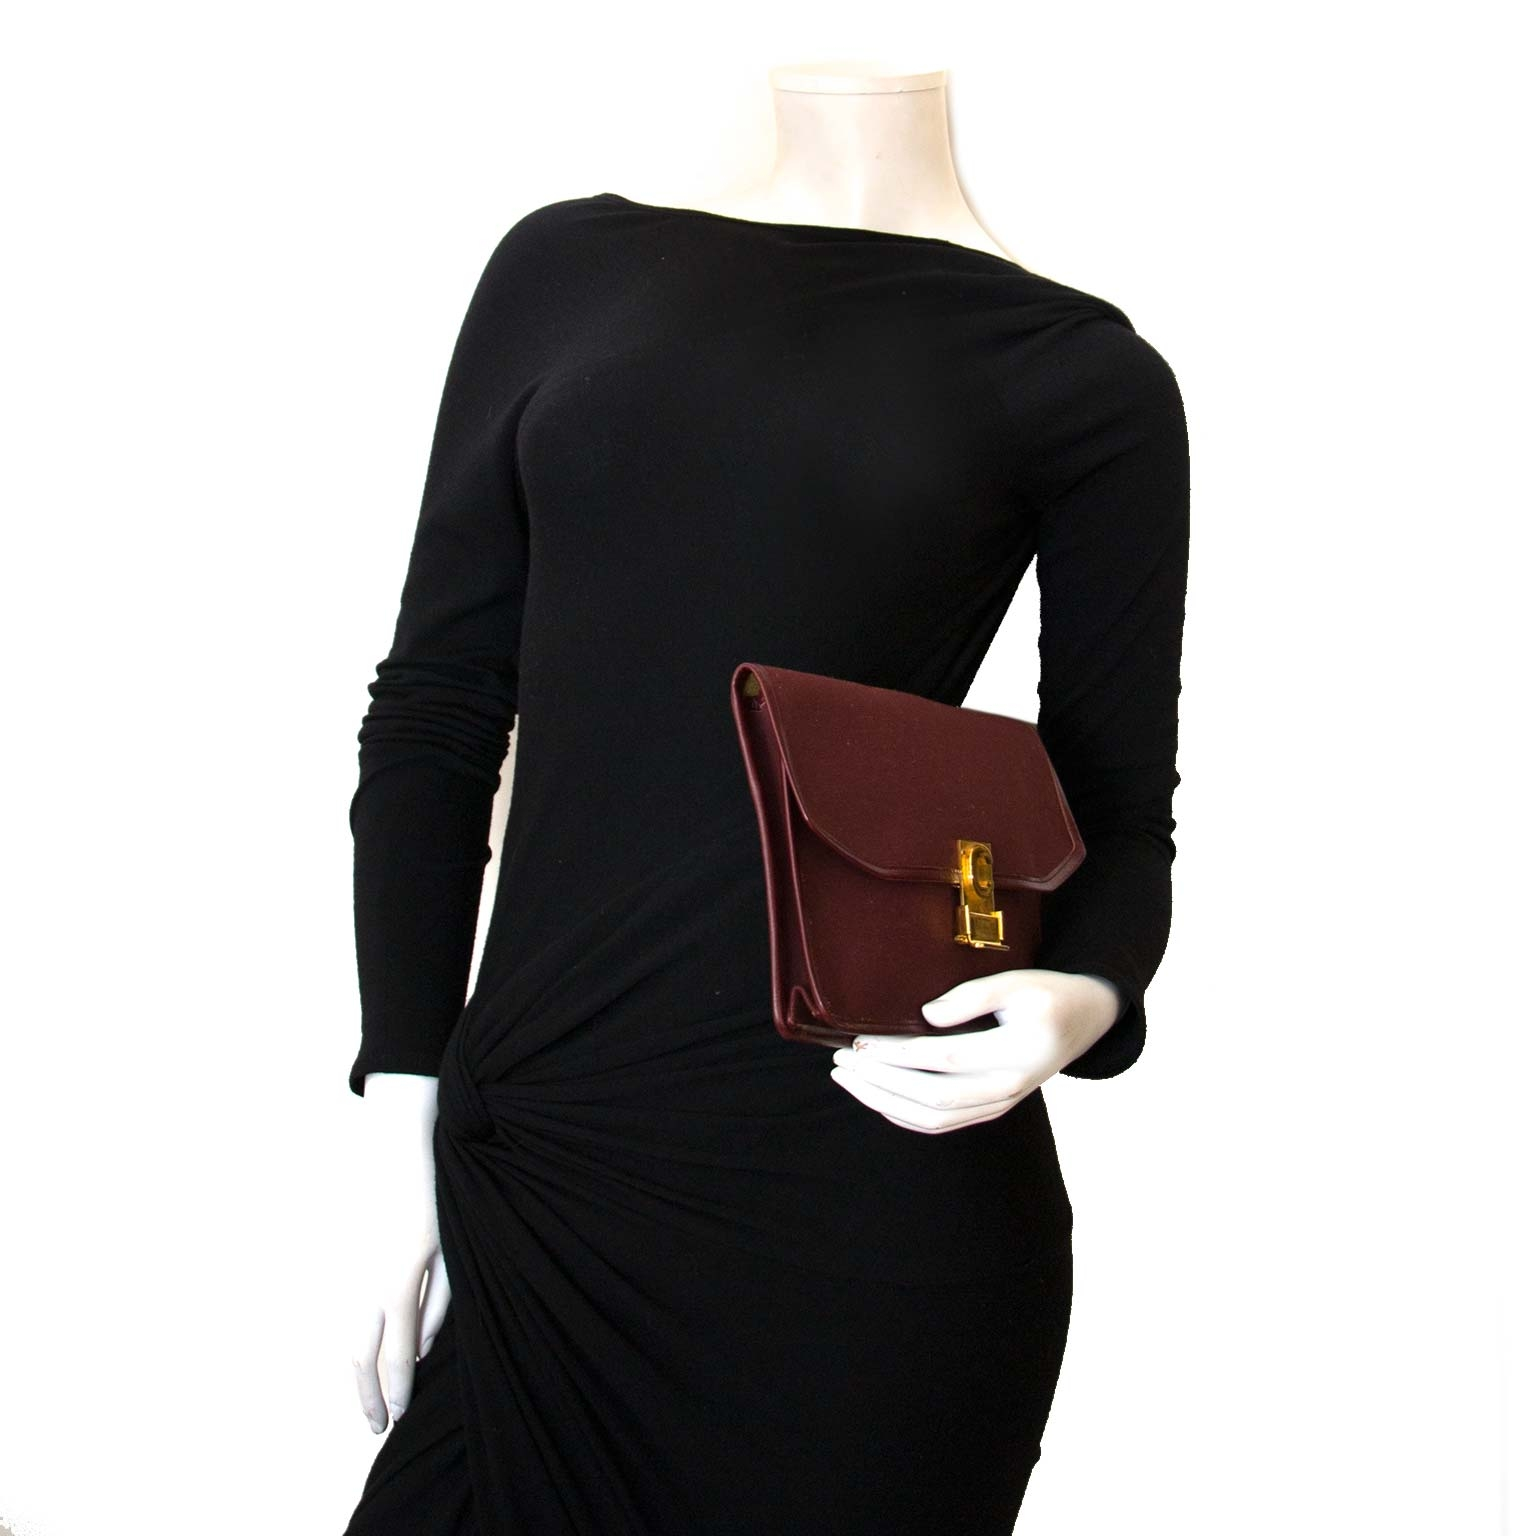 céline bordeaux fabric clutch now for sale at labellov vintage fashion webshop belgium